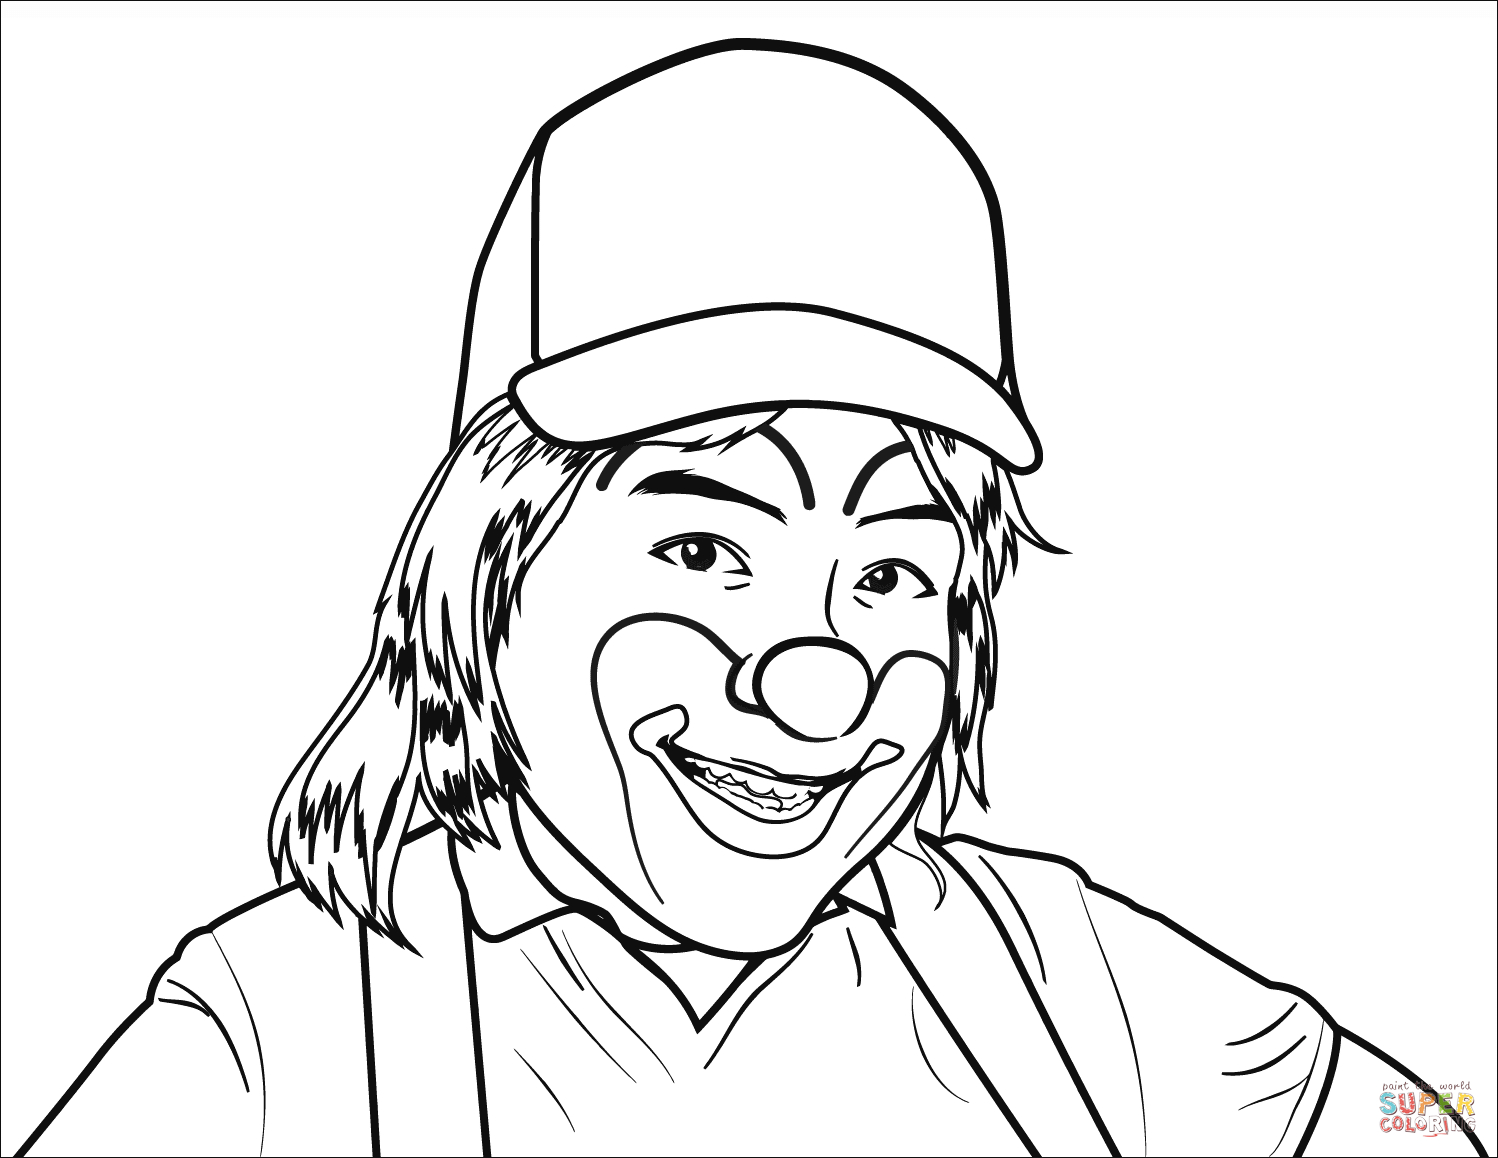 Smiling Coloring Pages Collection 15b - Save it to your computer